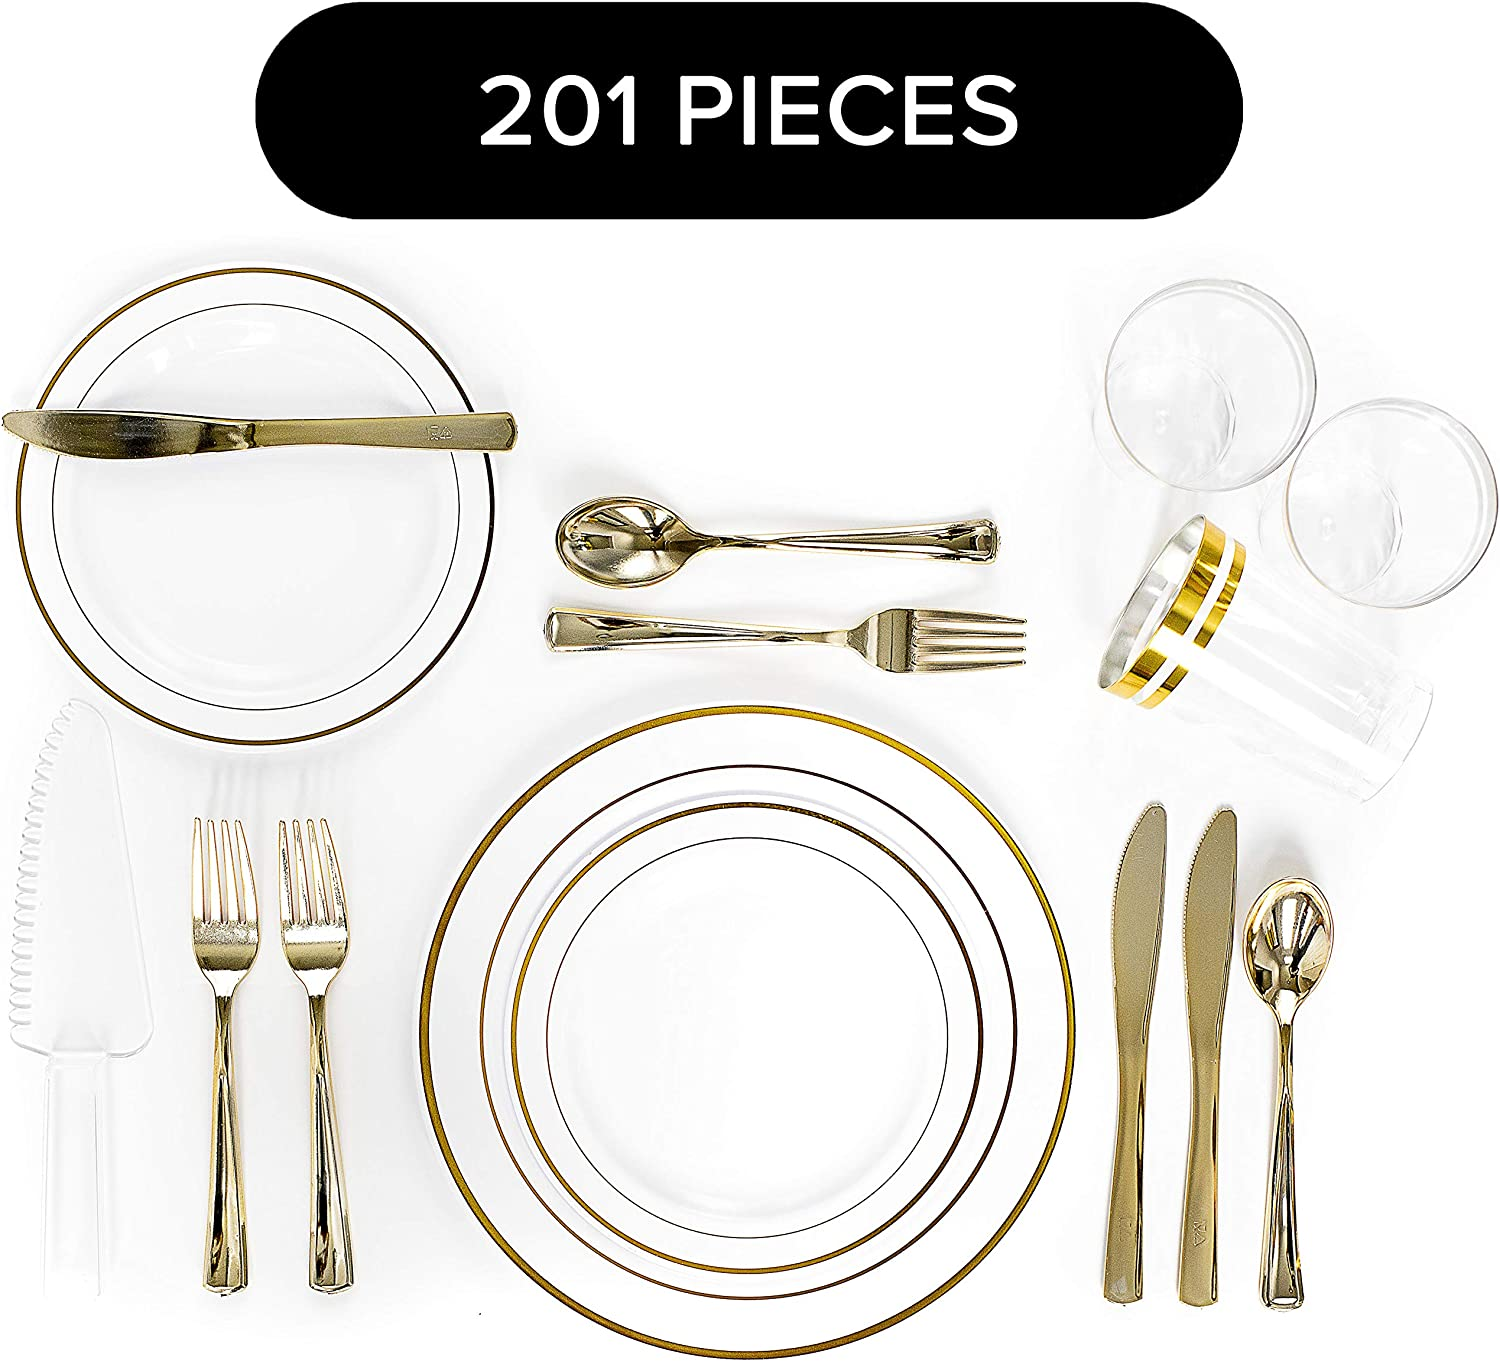 201 Piece Gold Rim Elegant Disposable Plastic Silverware and Plate Set Serves 25, with 25 Dinner Plates, 50 Salad/Dessert Plates, 50 Forks, 25 Knives, 1 Cake Cutter, 25 Spoons & 25 12oz Plastic Cups